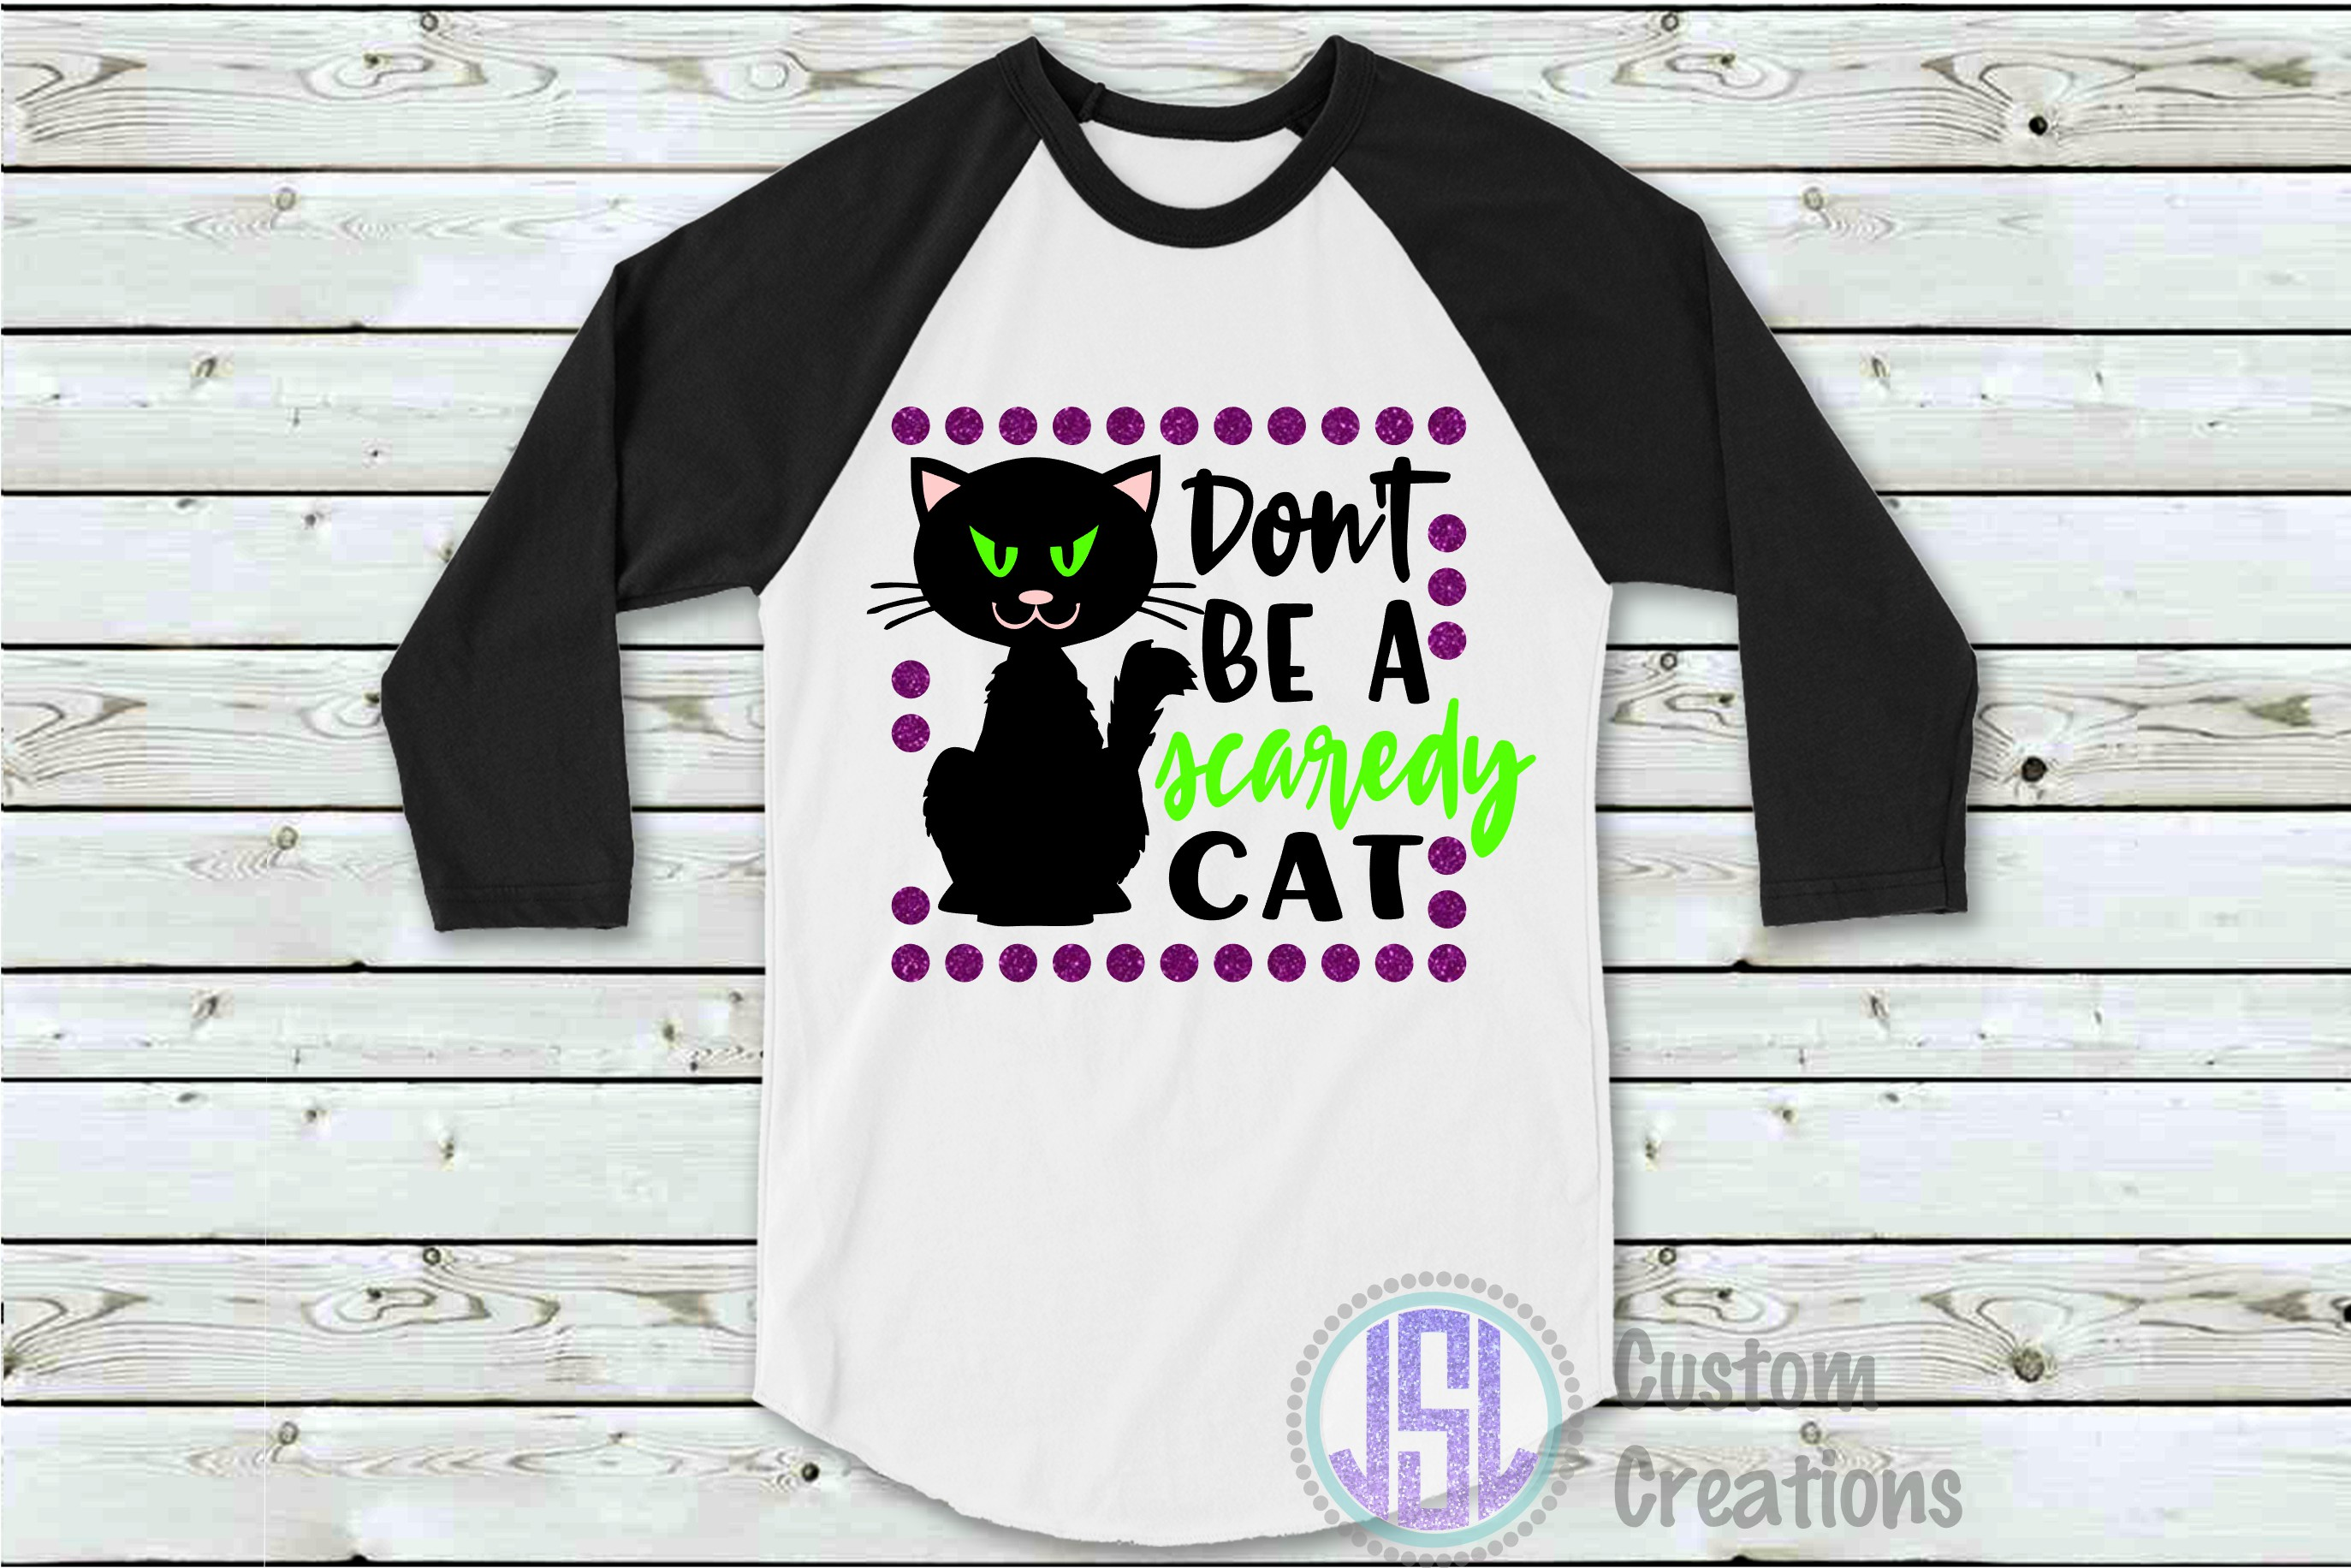 Don't Be a Scaredy Cat| SVG DXF EPS PNG Cut File example image 2